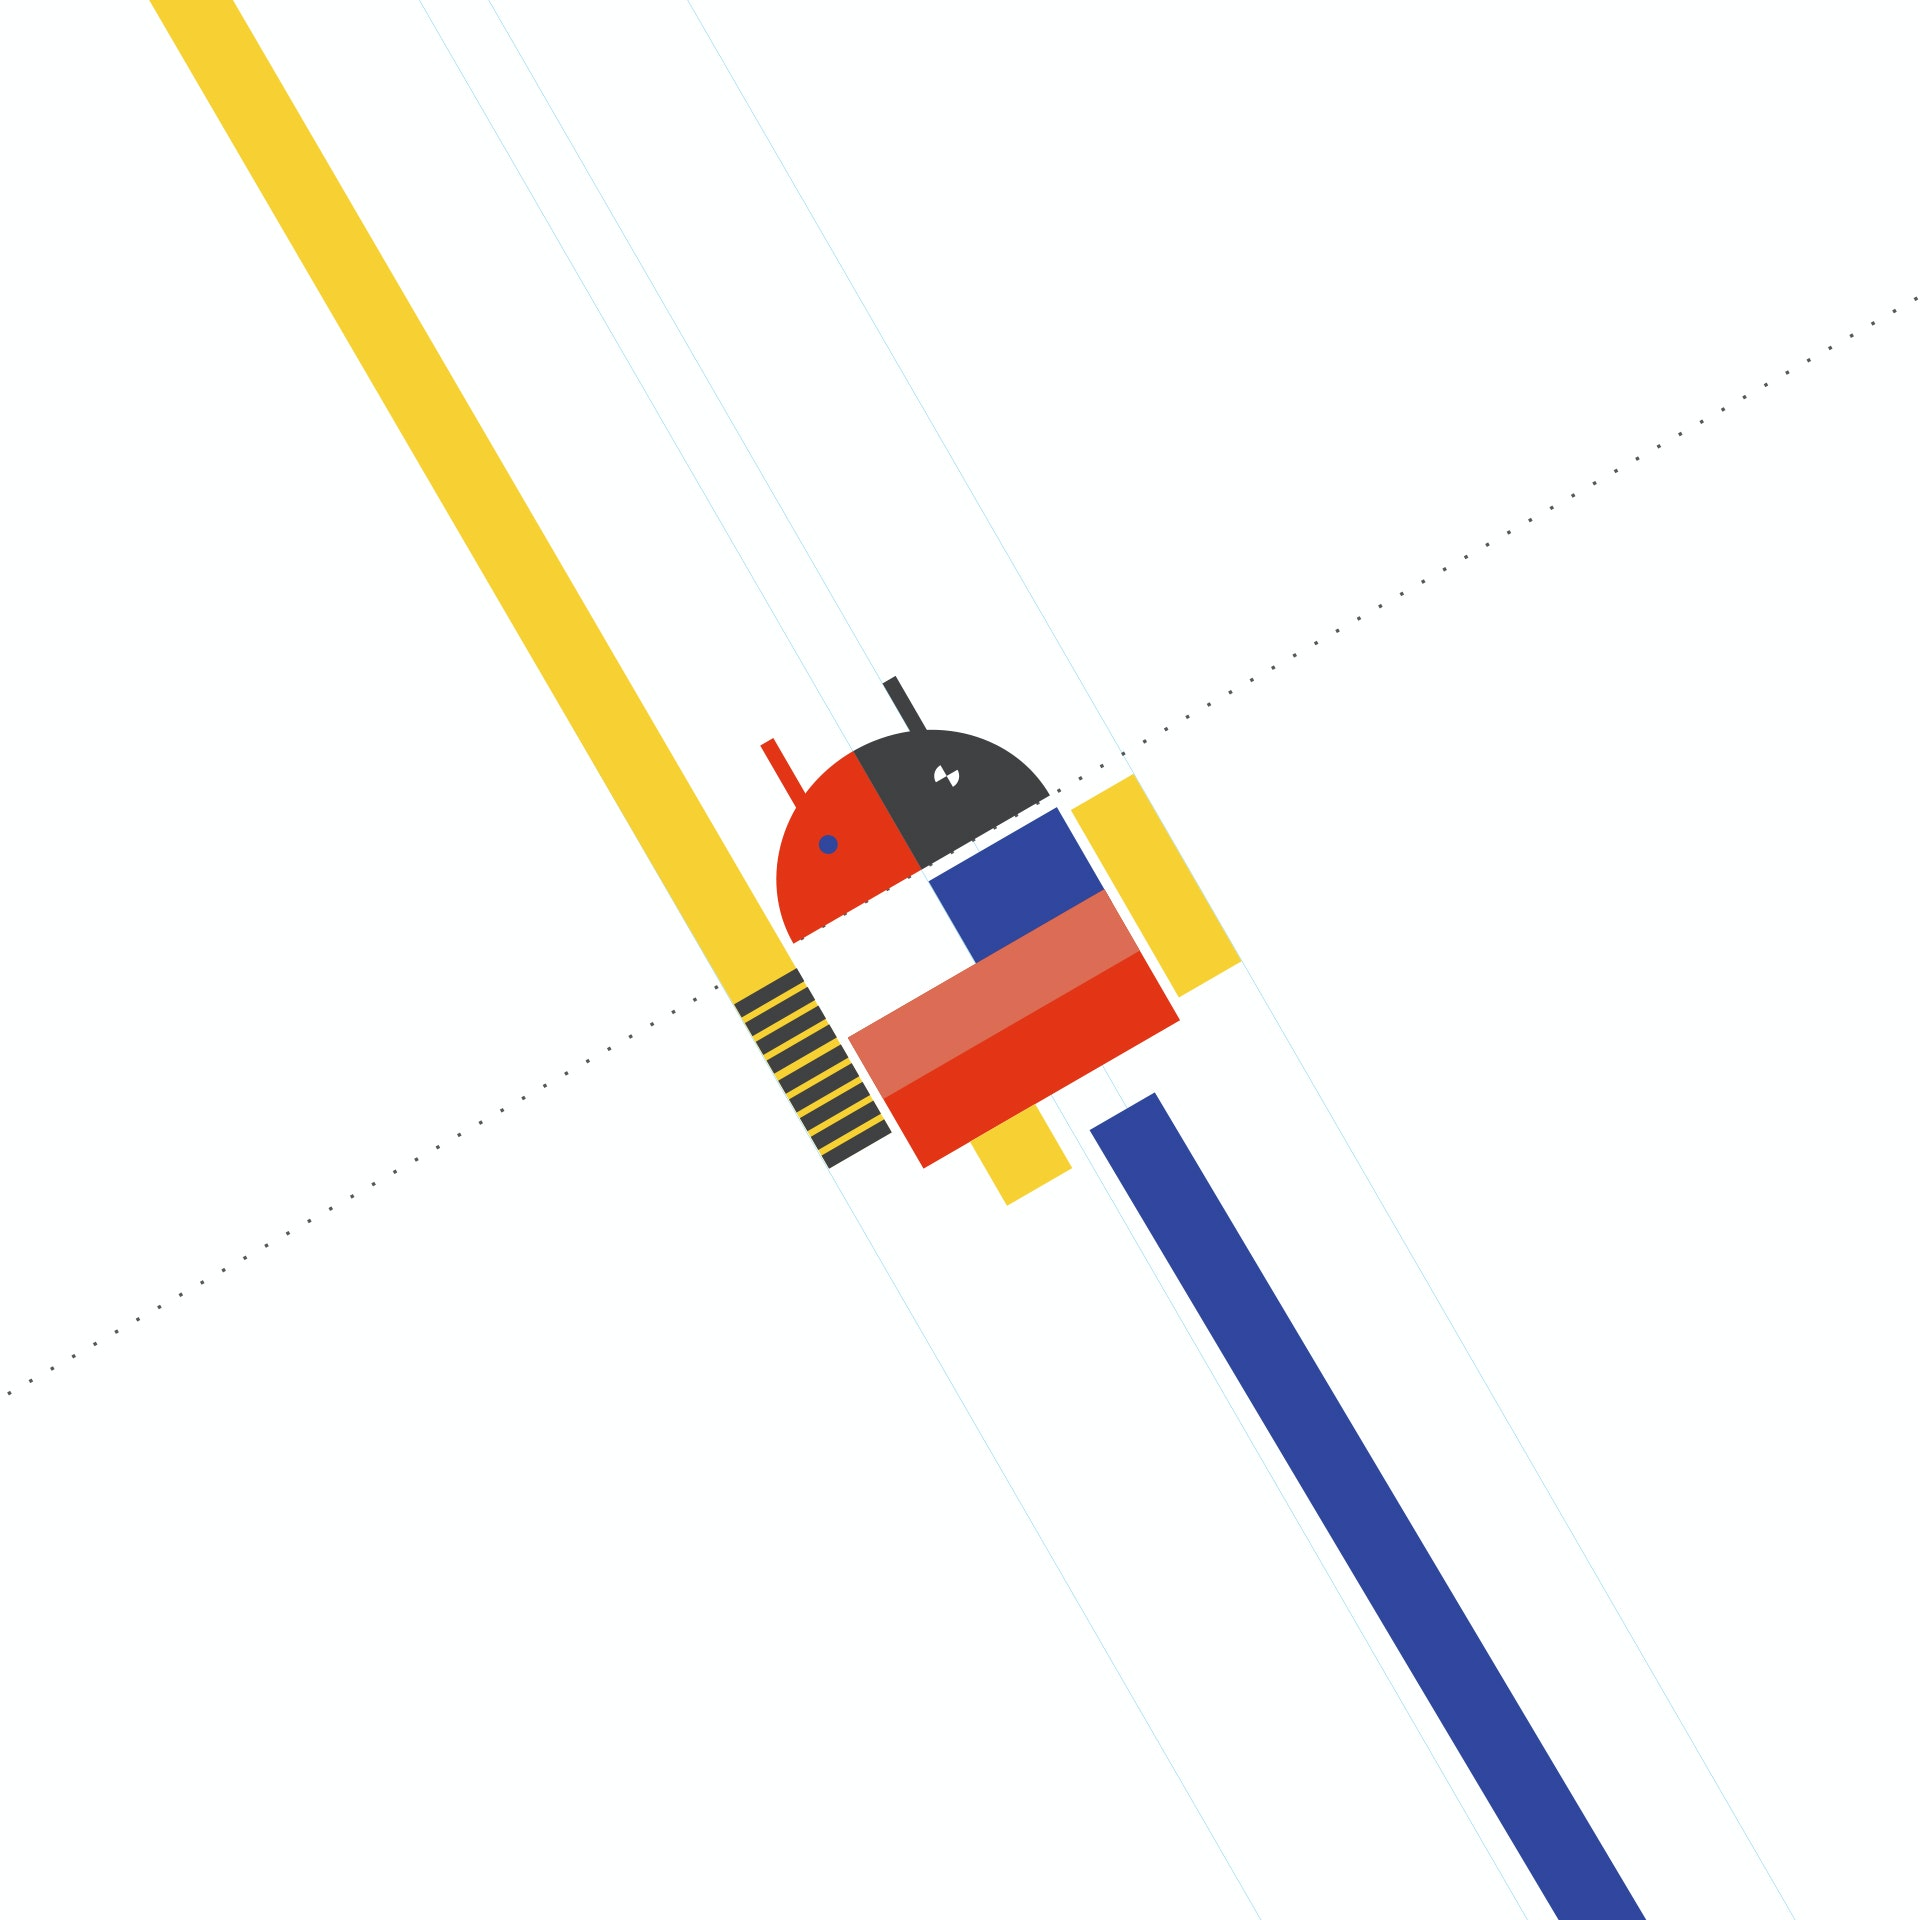 Android logo in Bauhaus design style